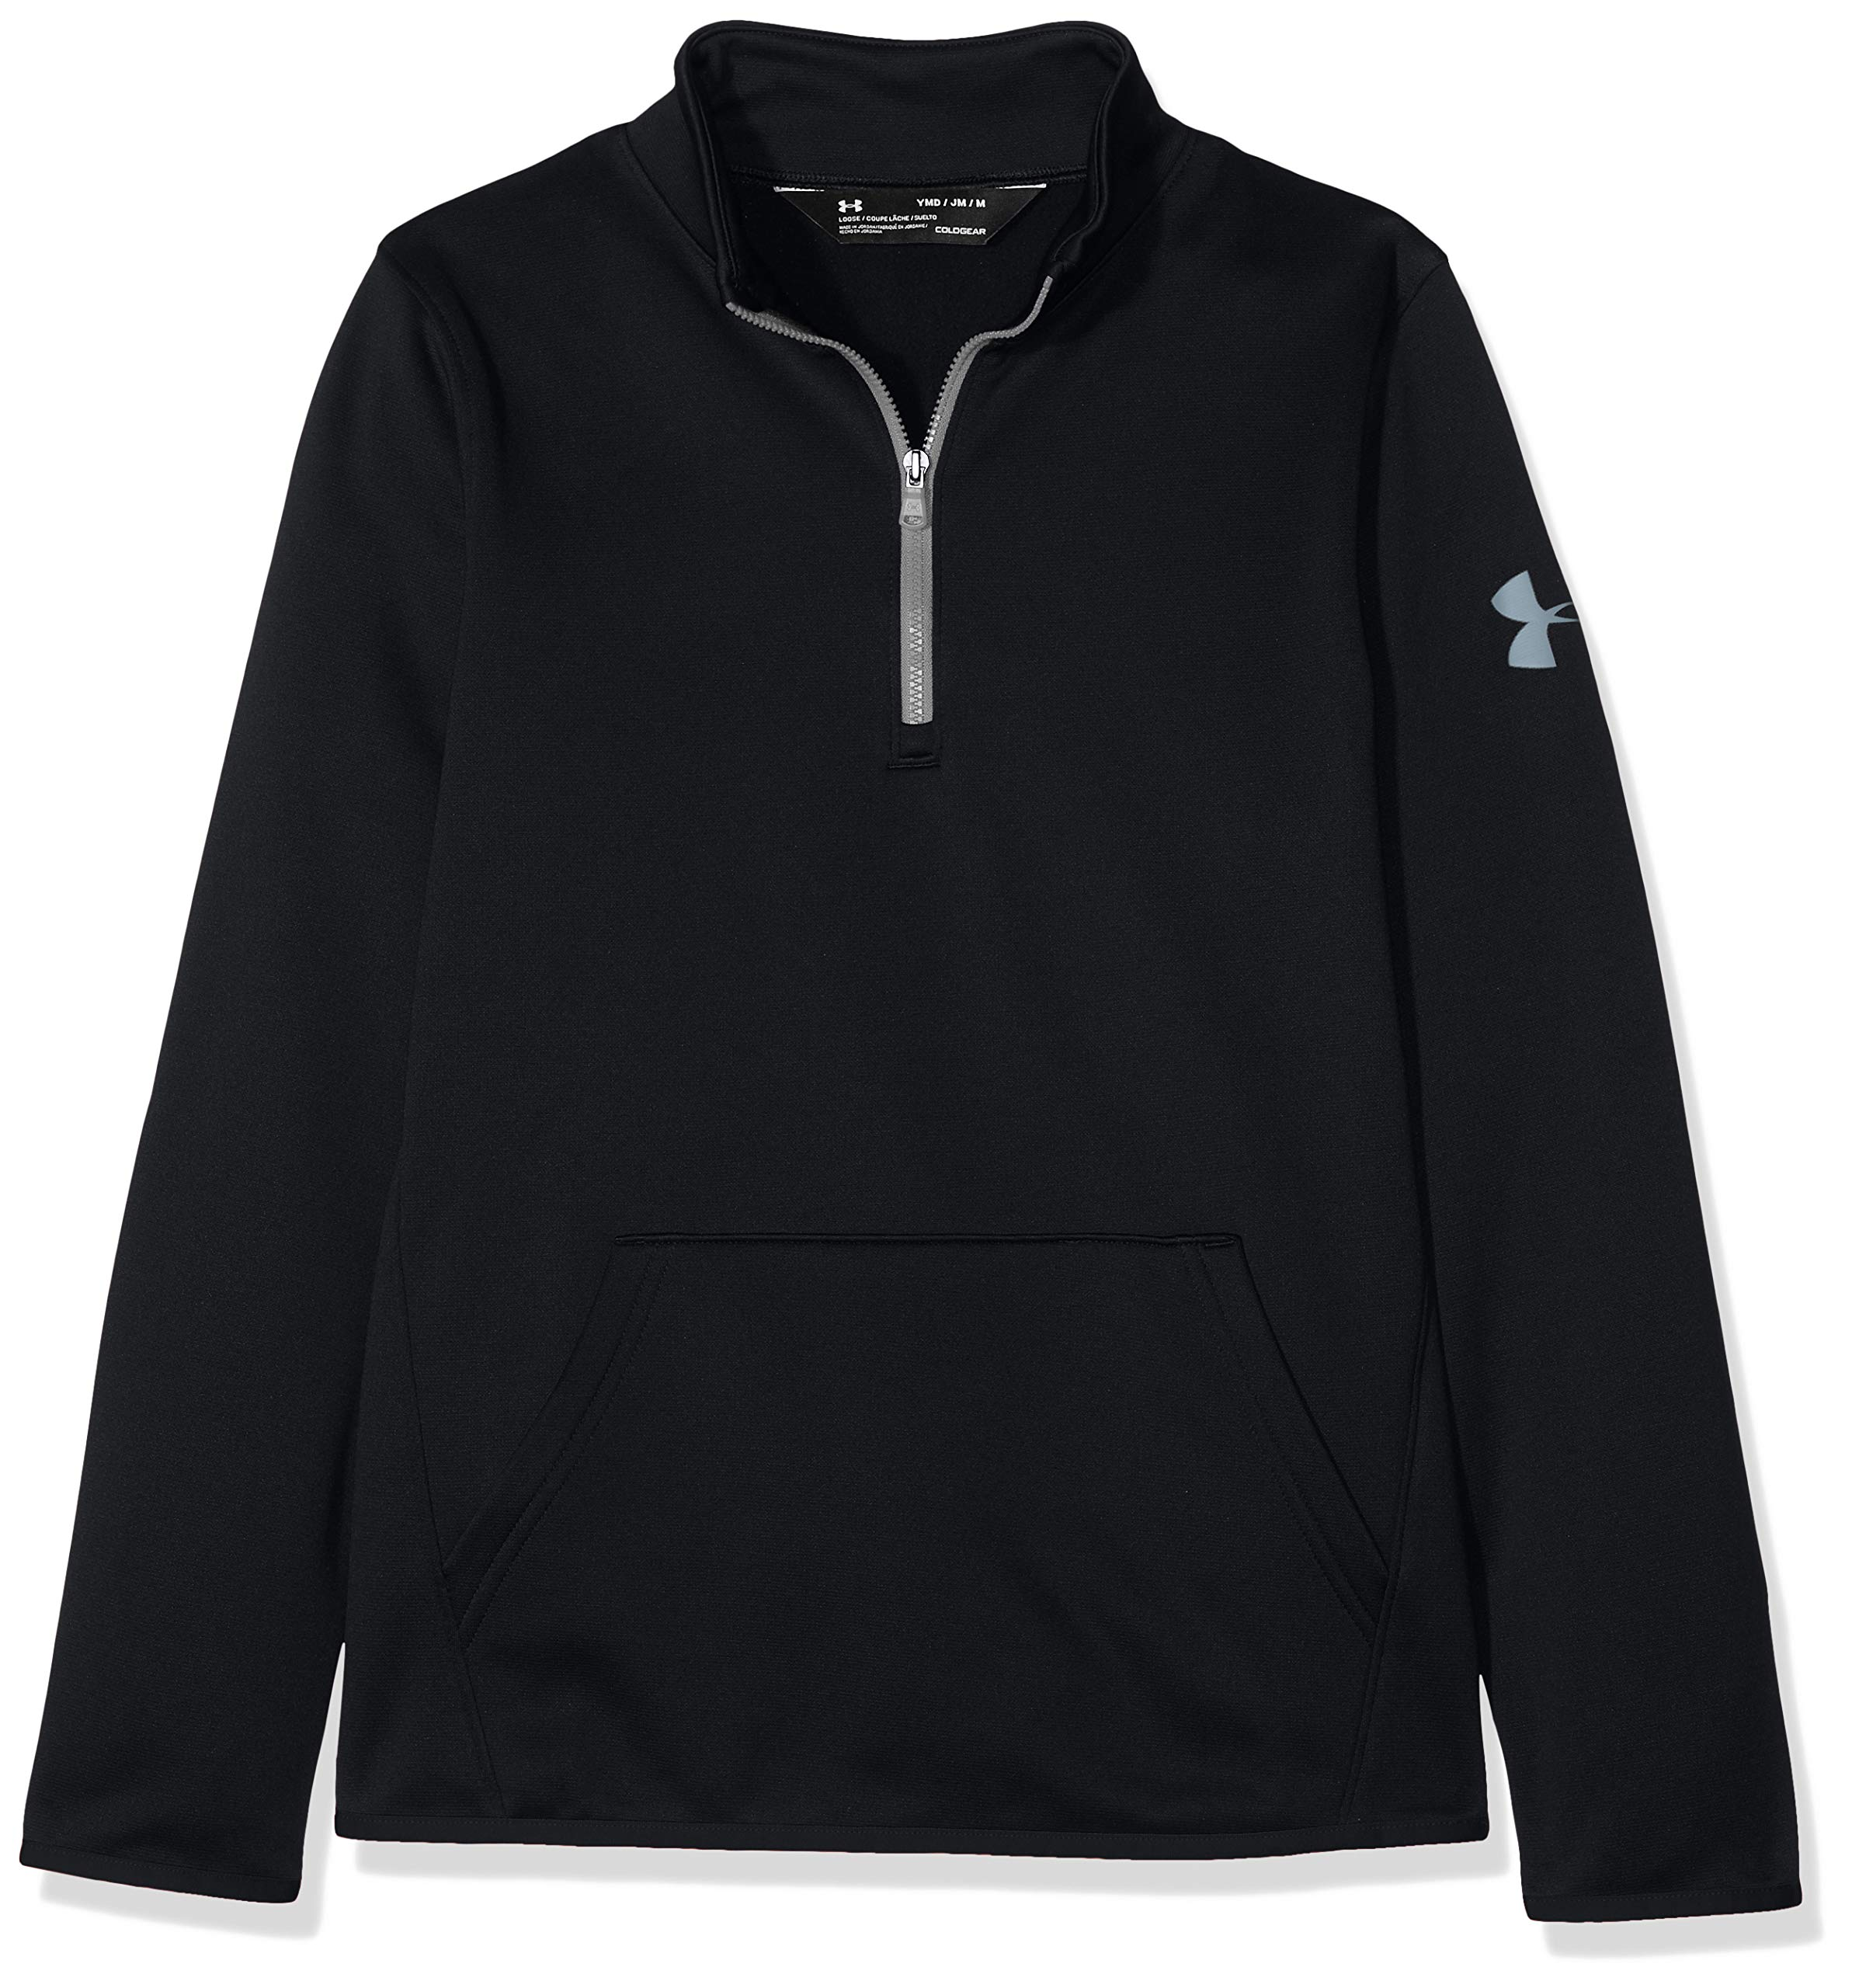 Under Armour Boys Armour Fleece 1/2 Zip, Black (001)/Steel, Youth Small by Under Armour